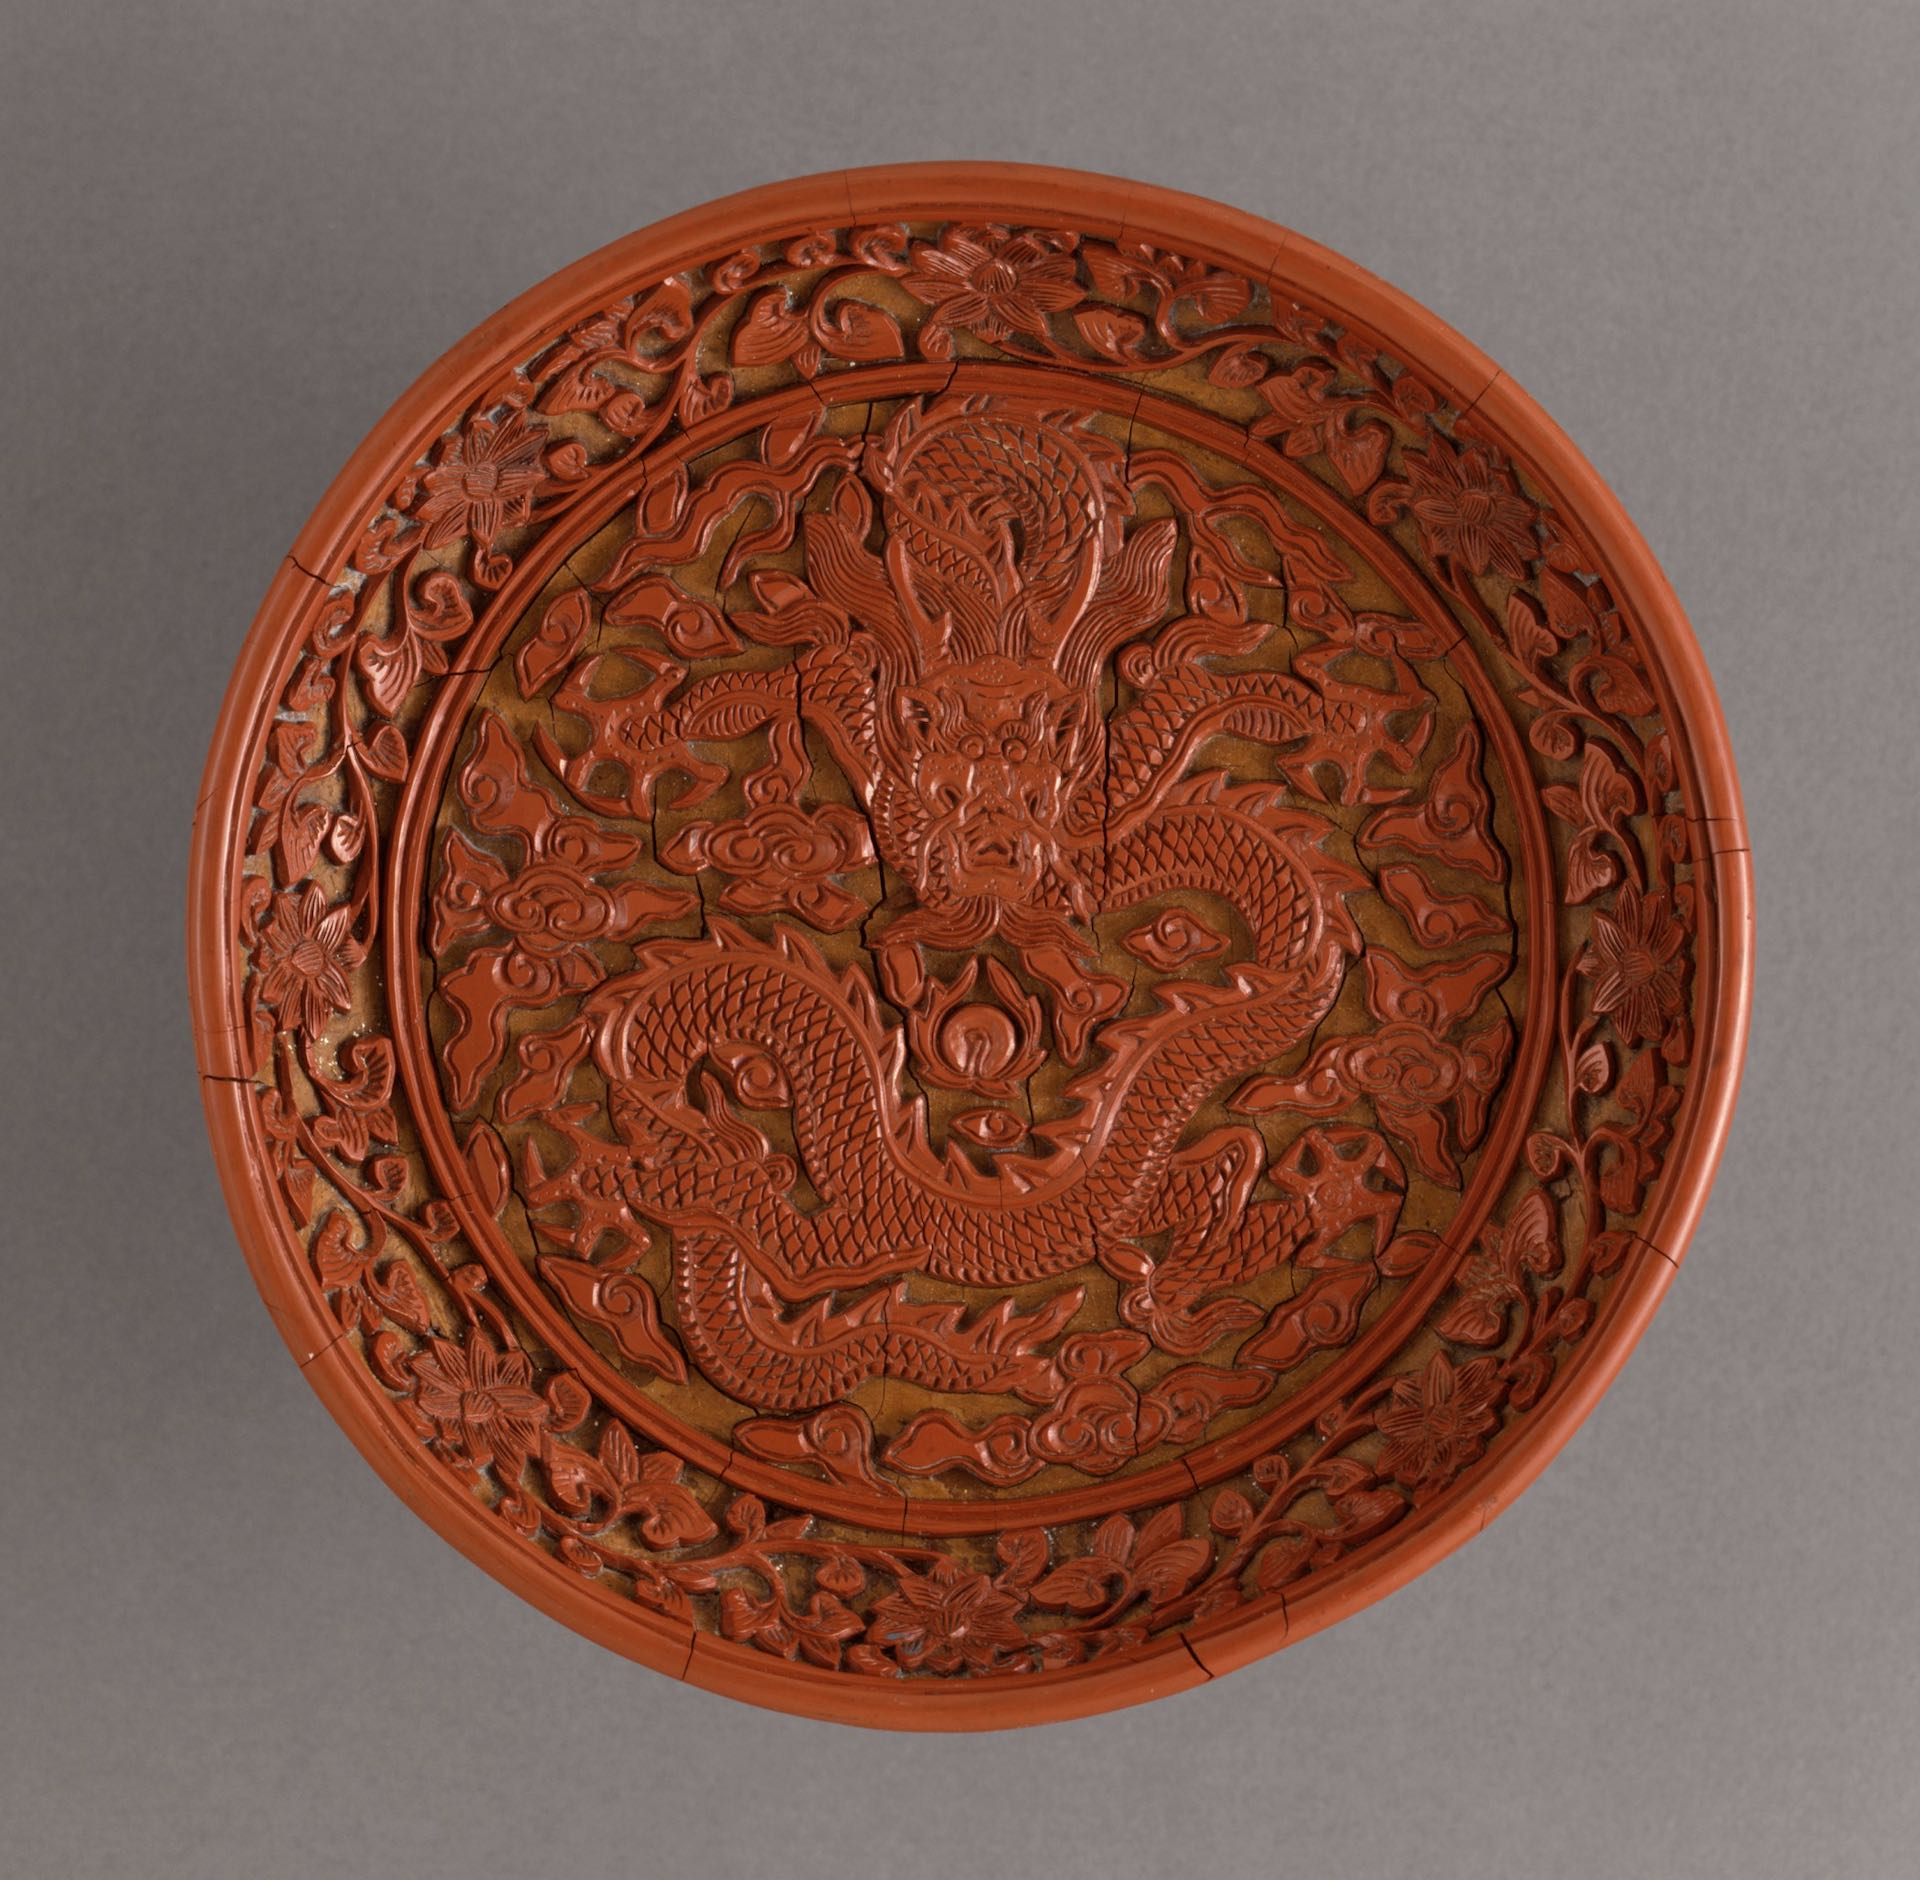 Lacquered ancient Chinese bowl with intricate dragon design